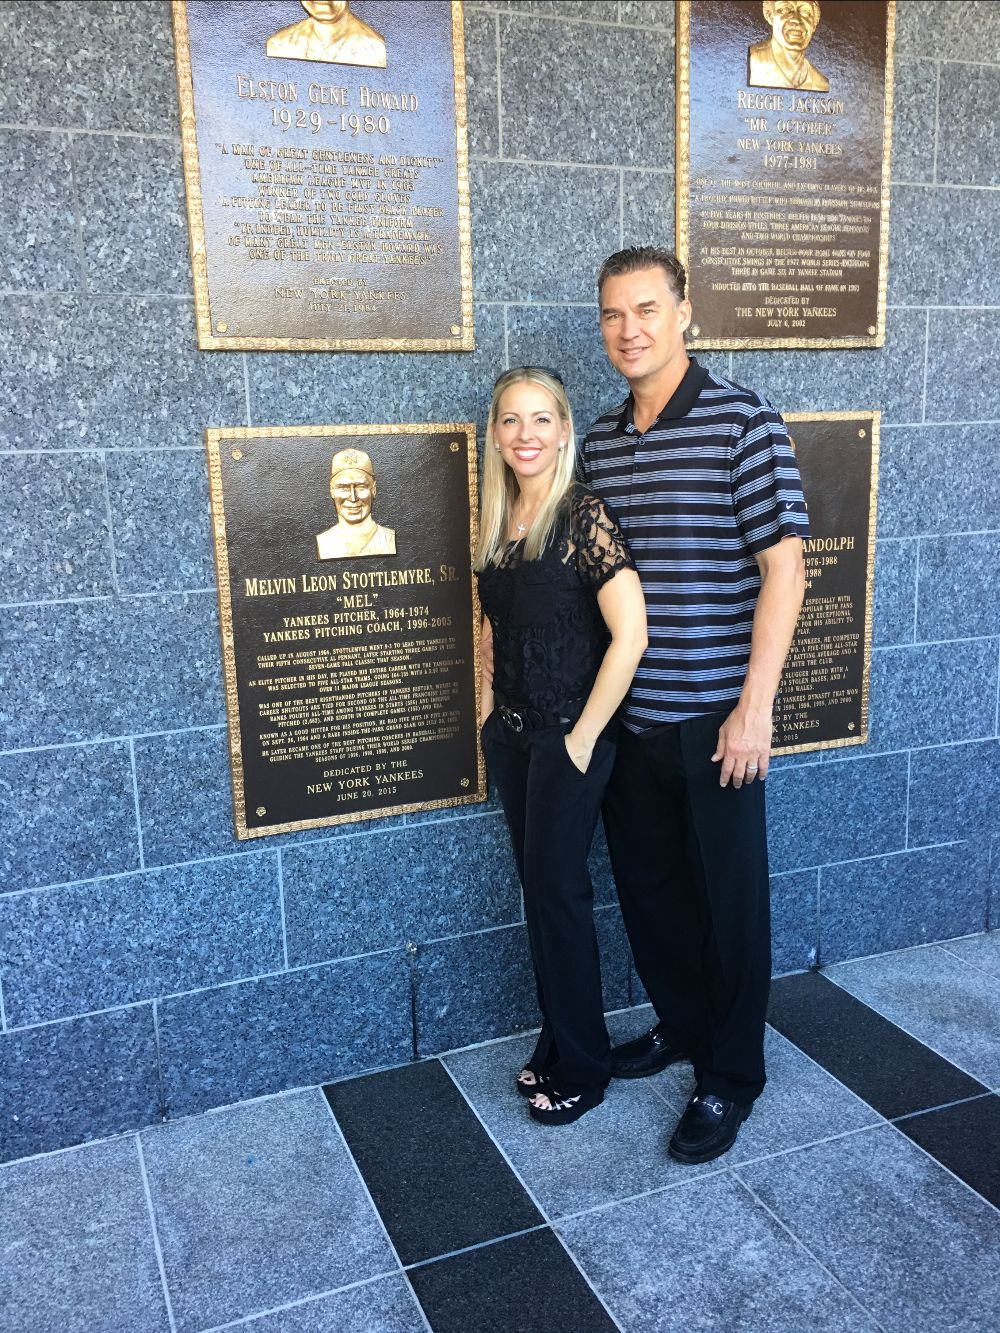 Todd Stottlemyre and his wife, Erica, beside his father's plaque in Yankees' monument park.